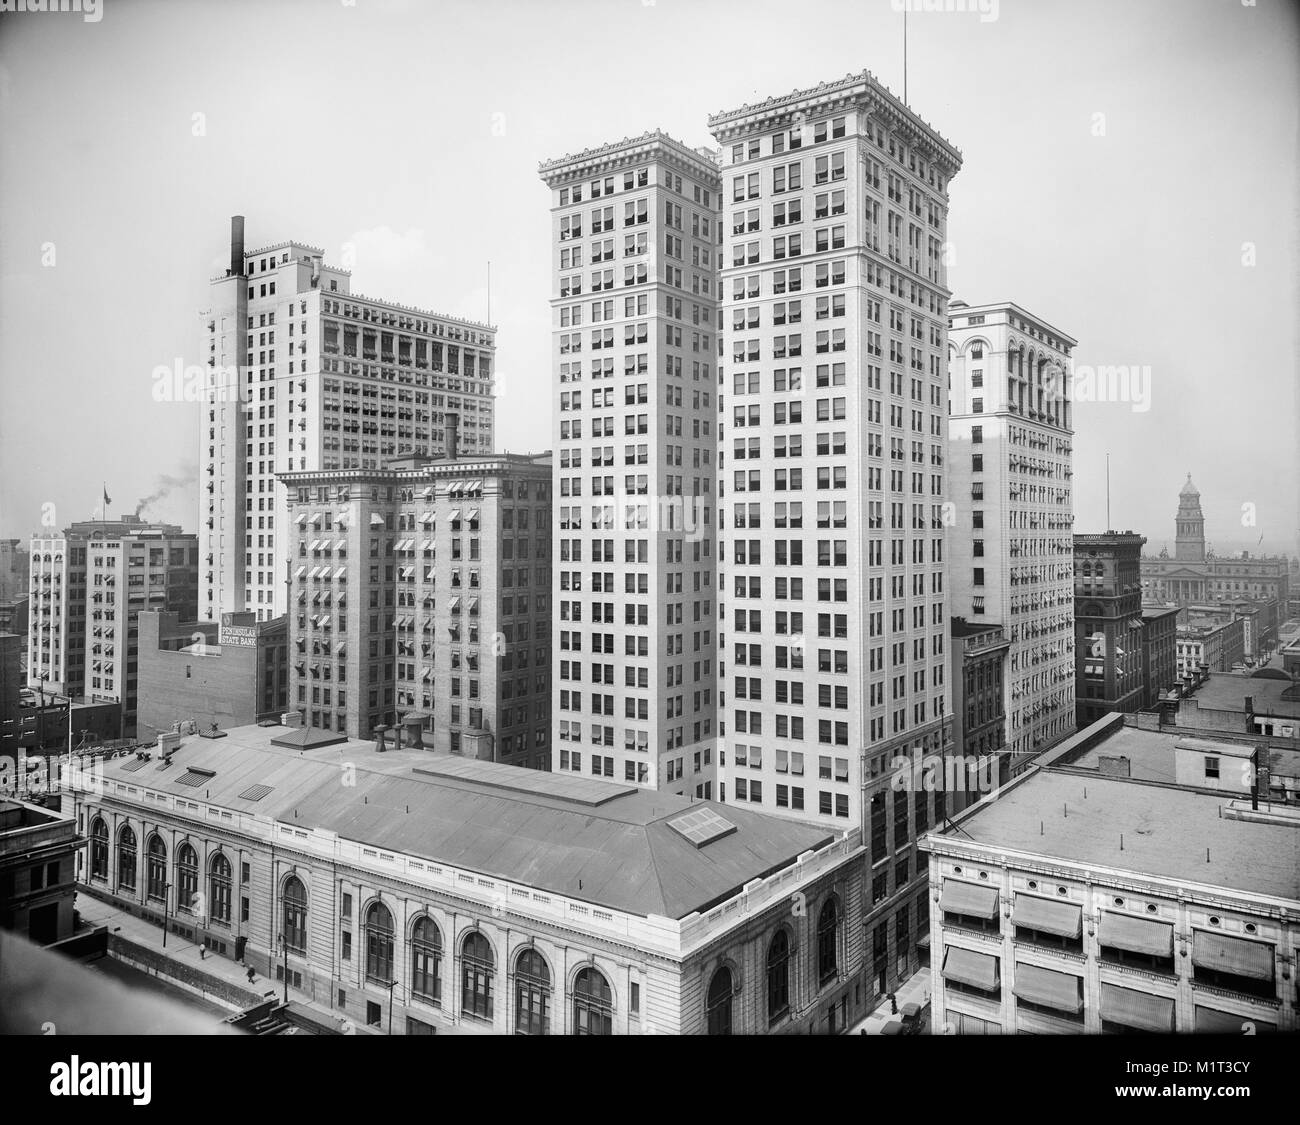 Dime, Penobscot, and Ford buildings, Detroit, Michigan, USA, Detroit Publishing Company, early 1910's - Stock Image